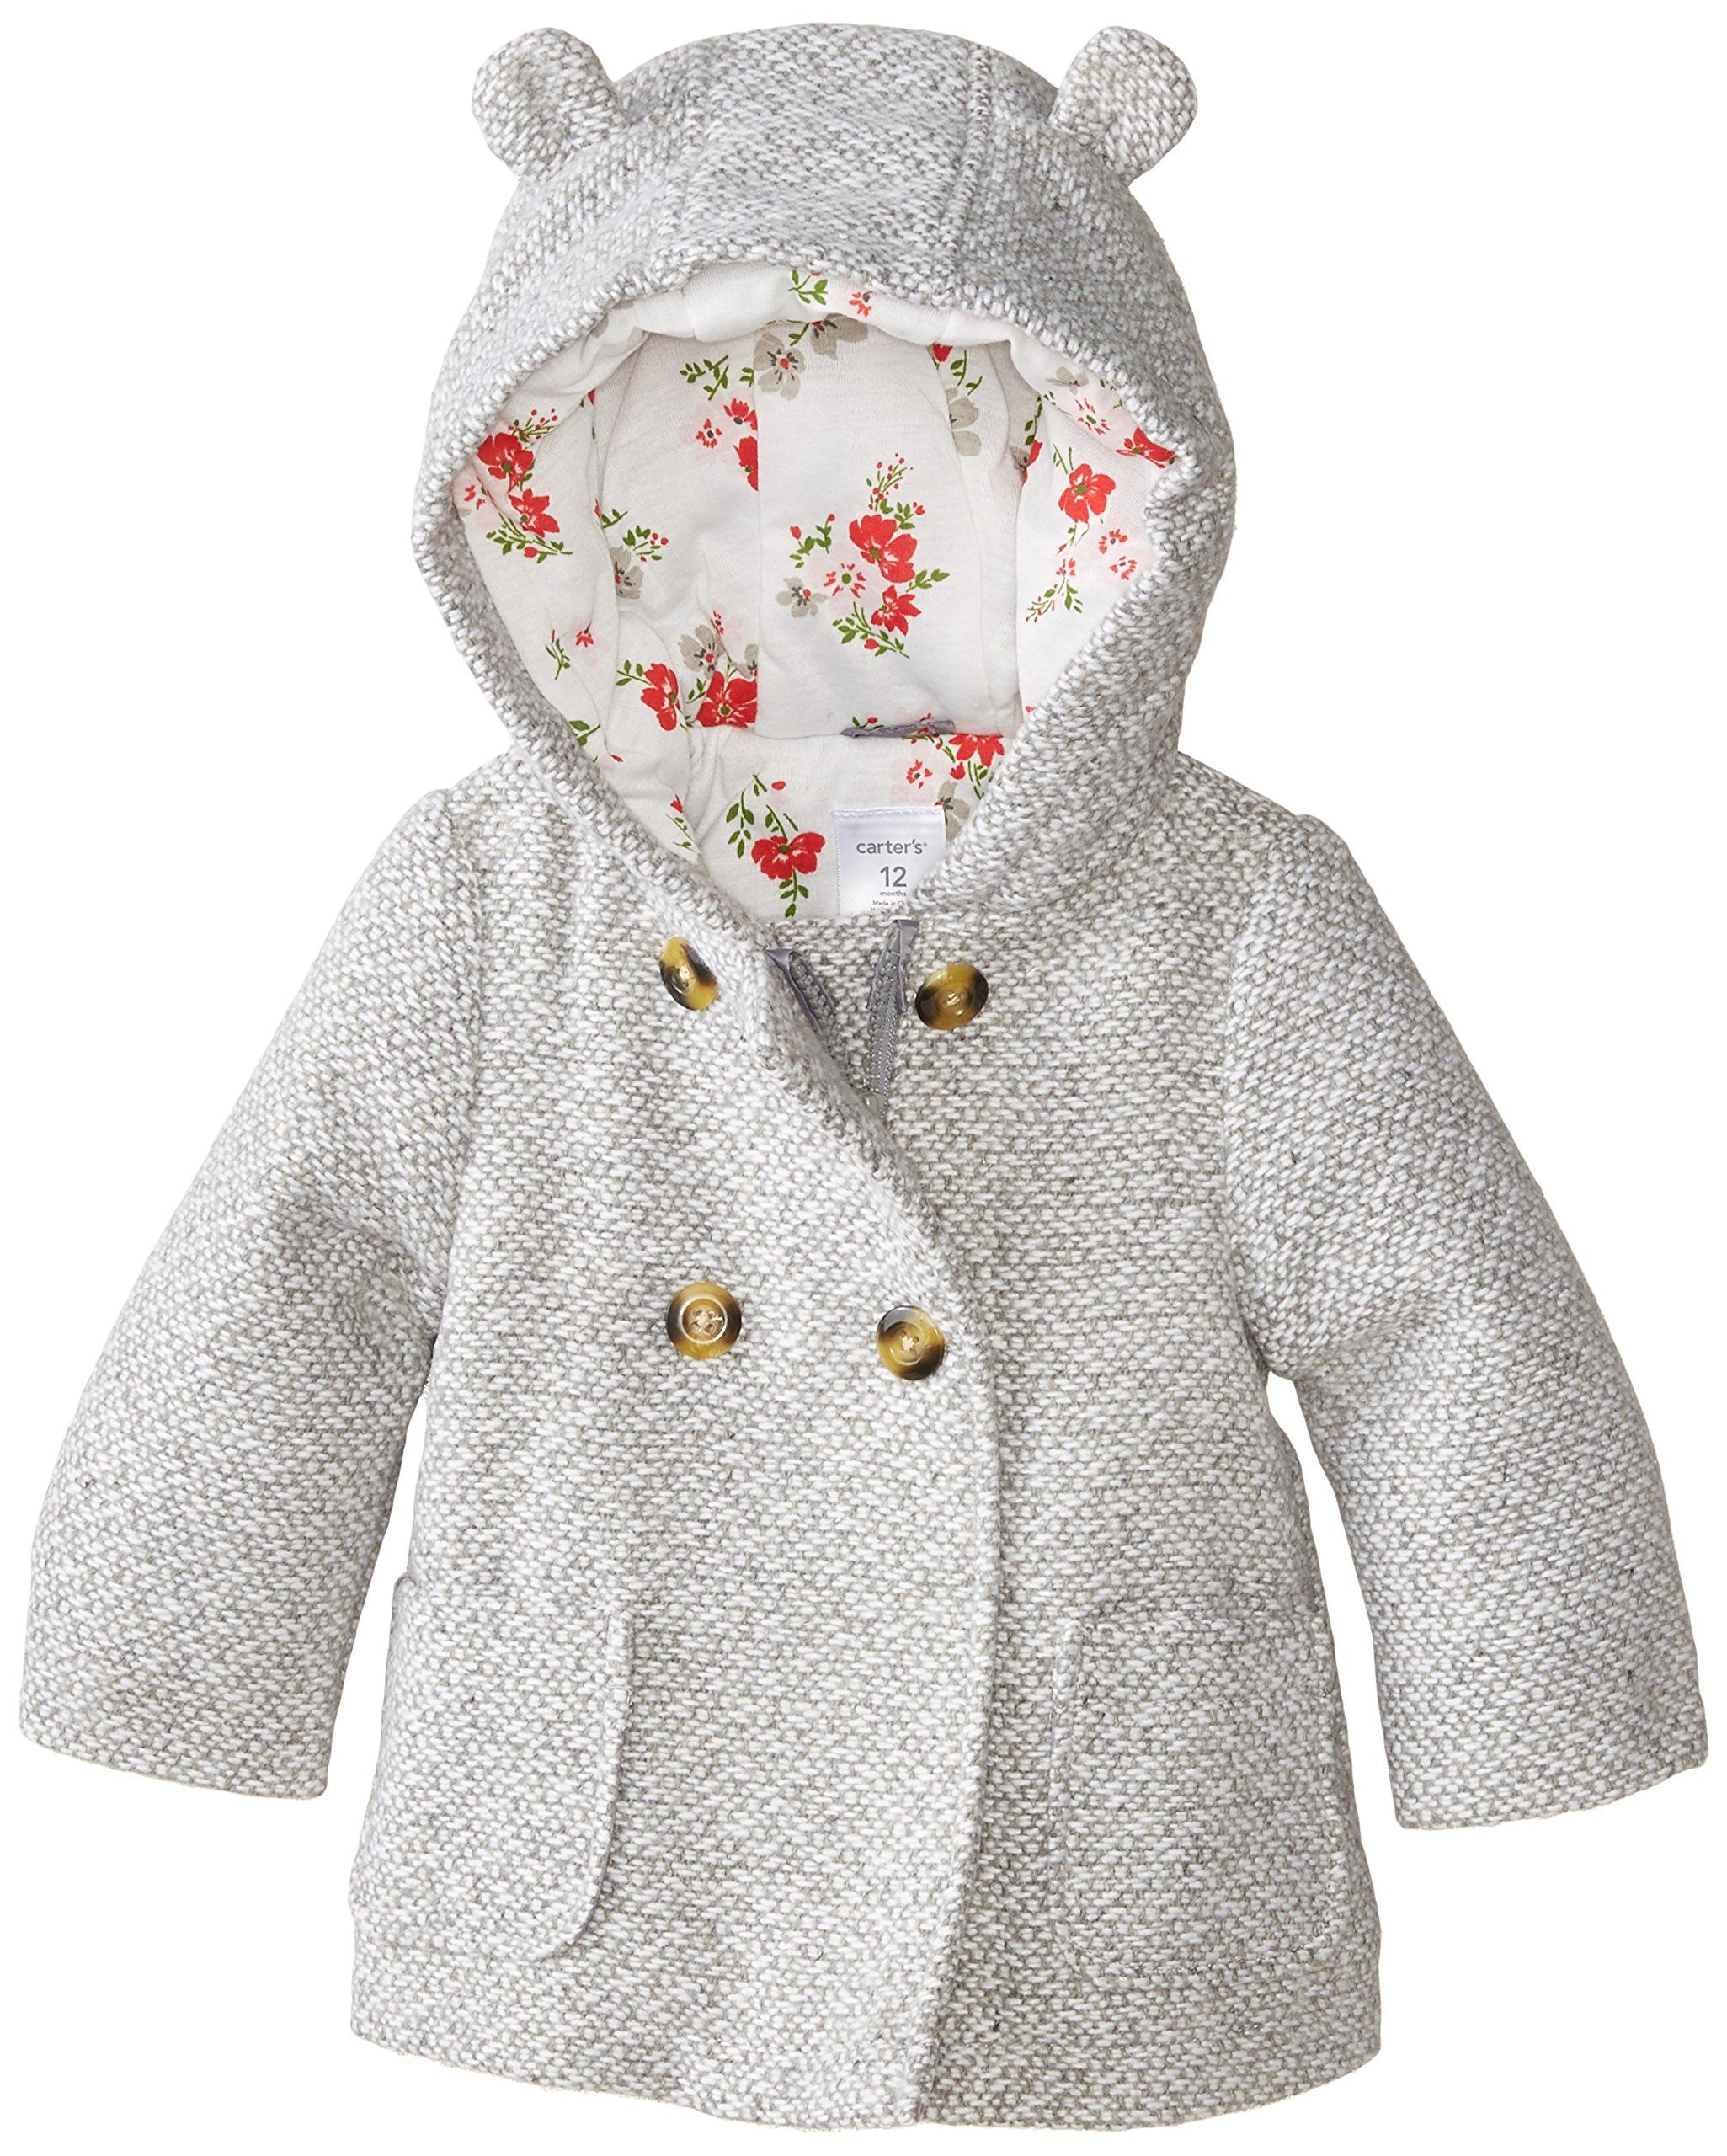 c93060260 Amazon.com  Carter s Baby Girls  Infants Trans Single Jacket ...